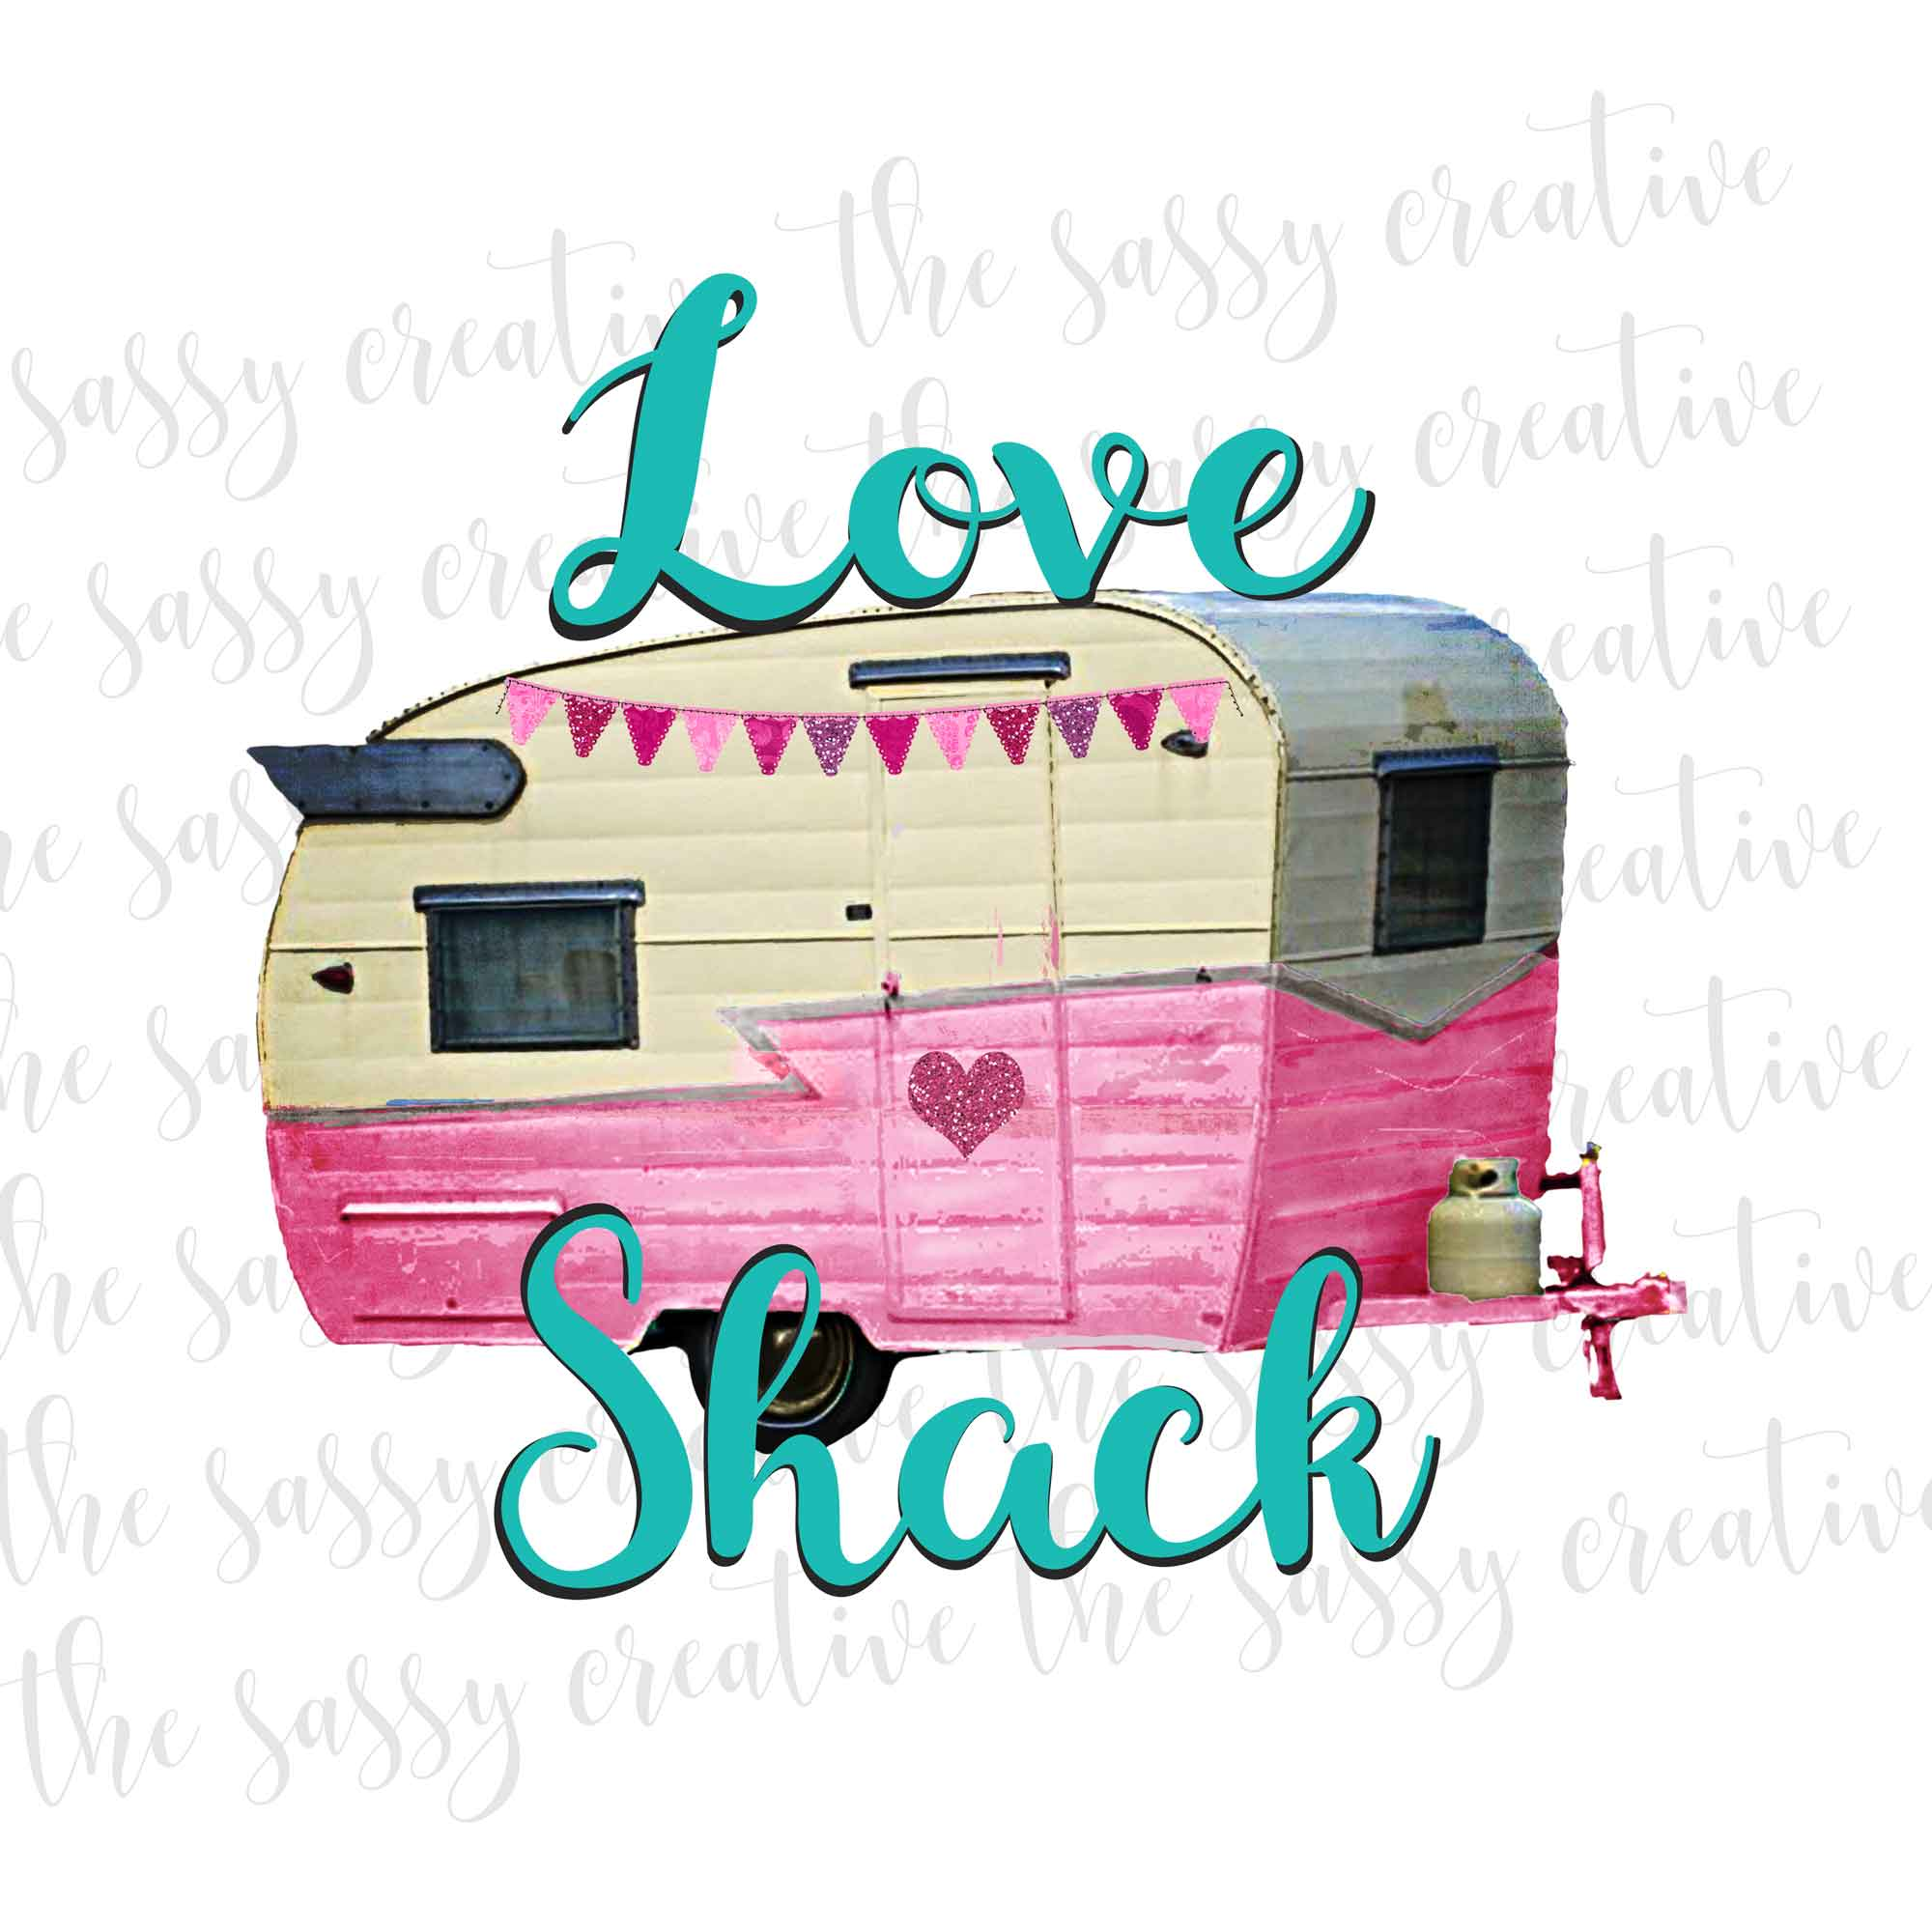 loveshackcover